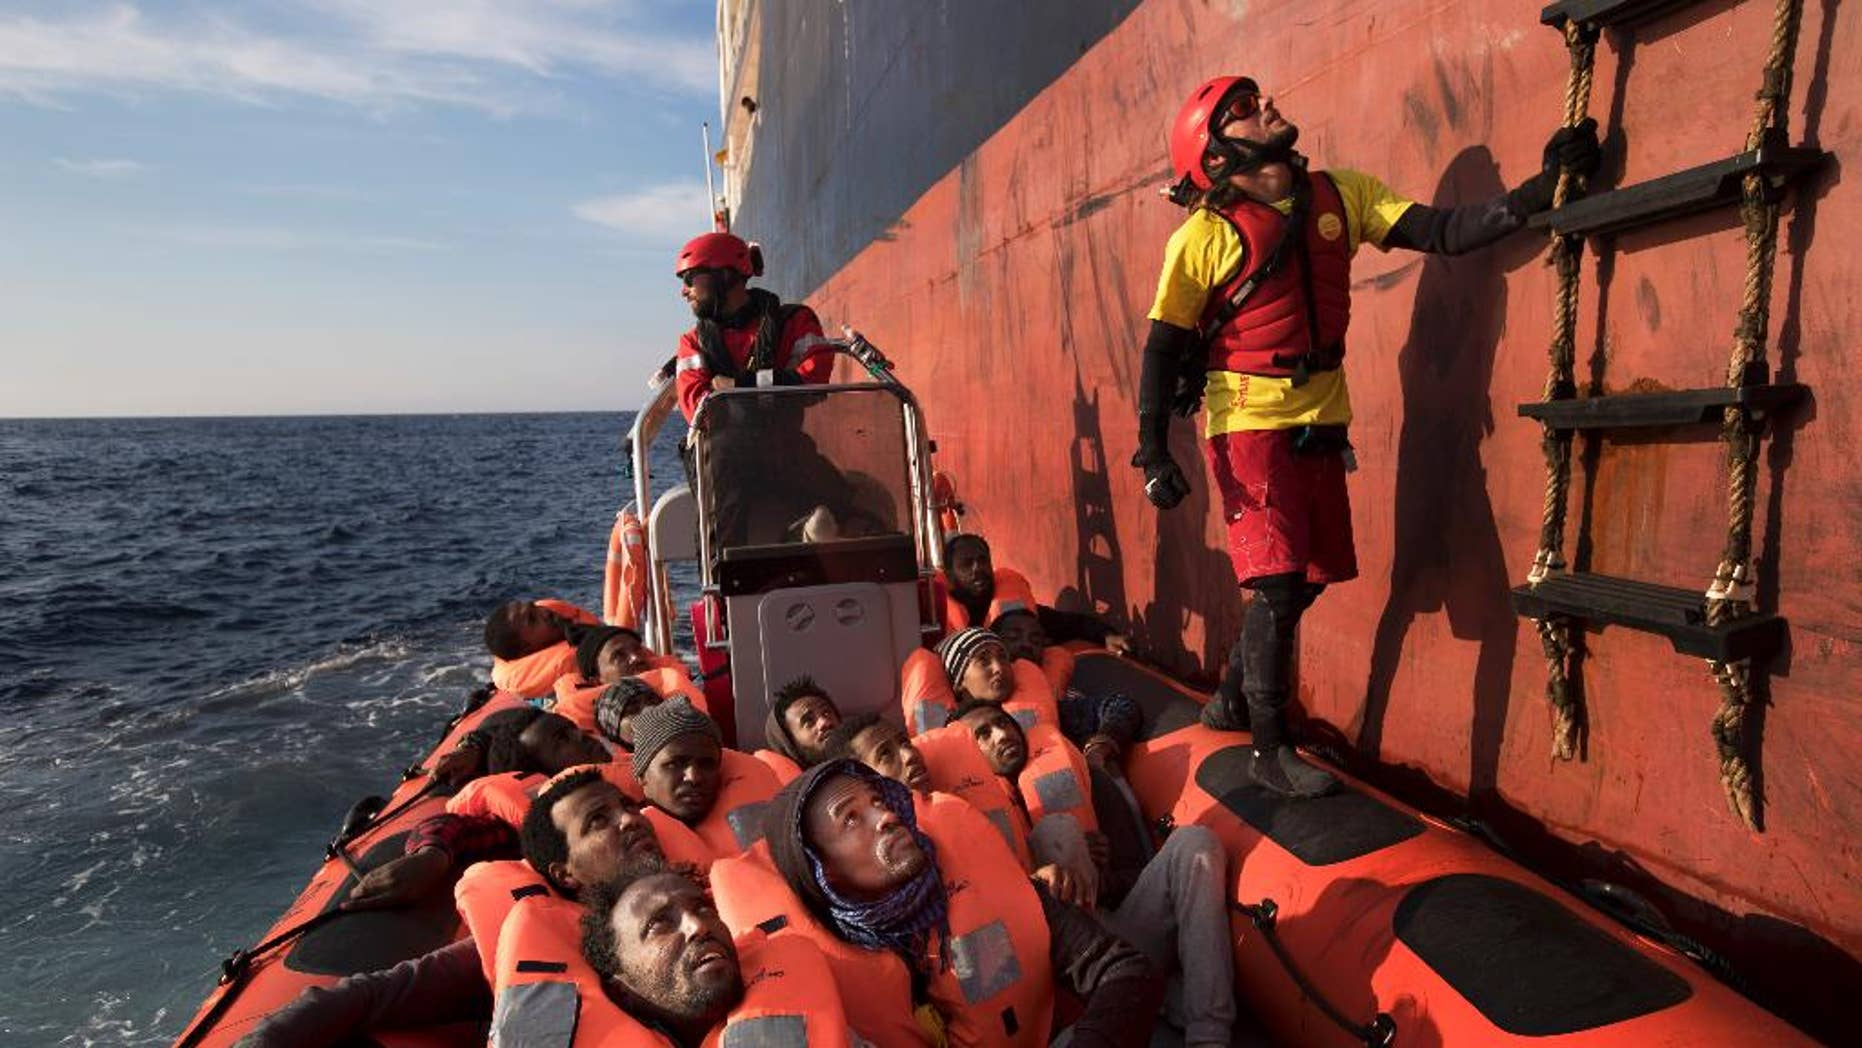 Eritrean migrants are rescued in the Mediterranean sea, about 56 miles north of Sabratha, Libya, April 6, 2017.